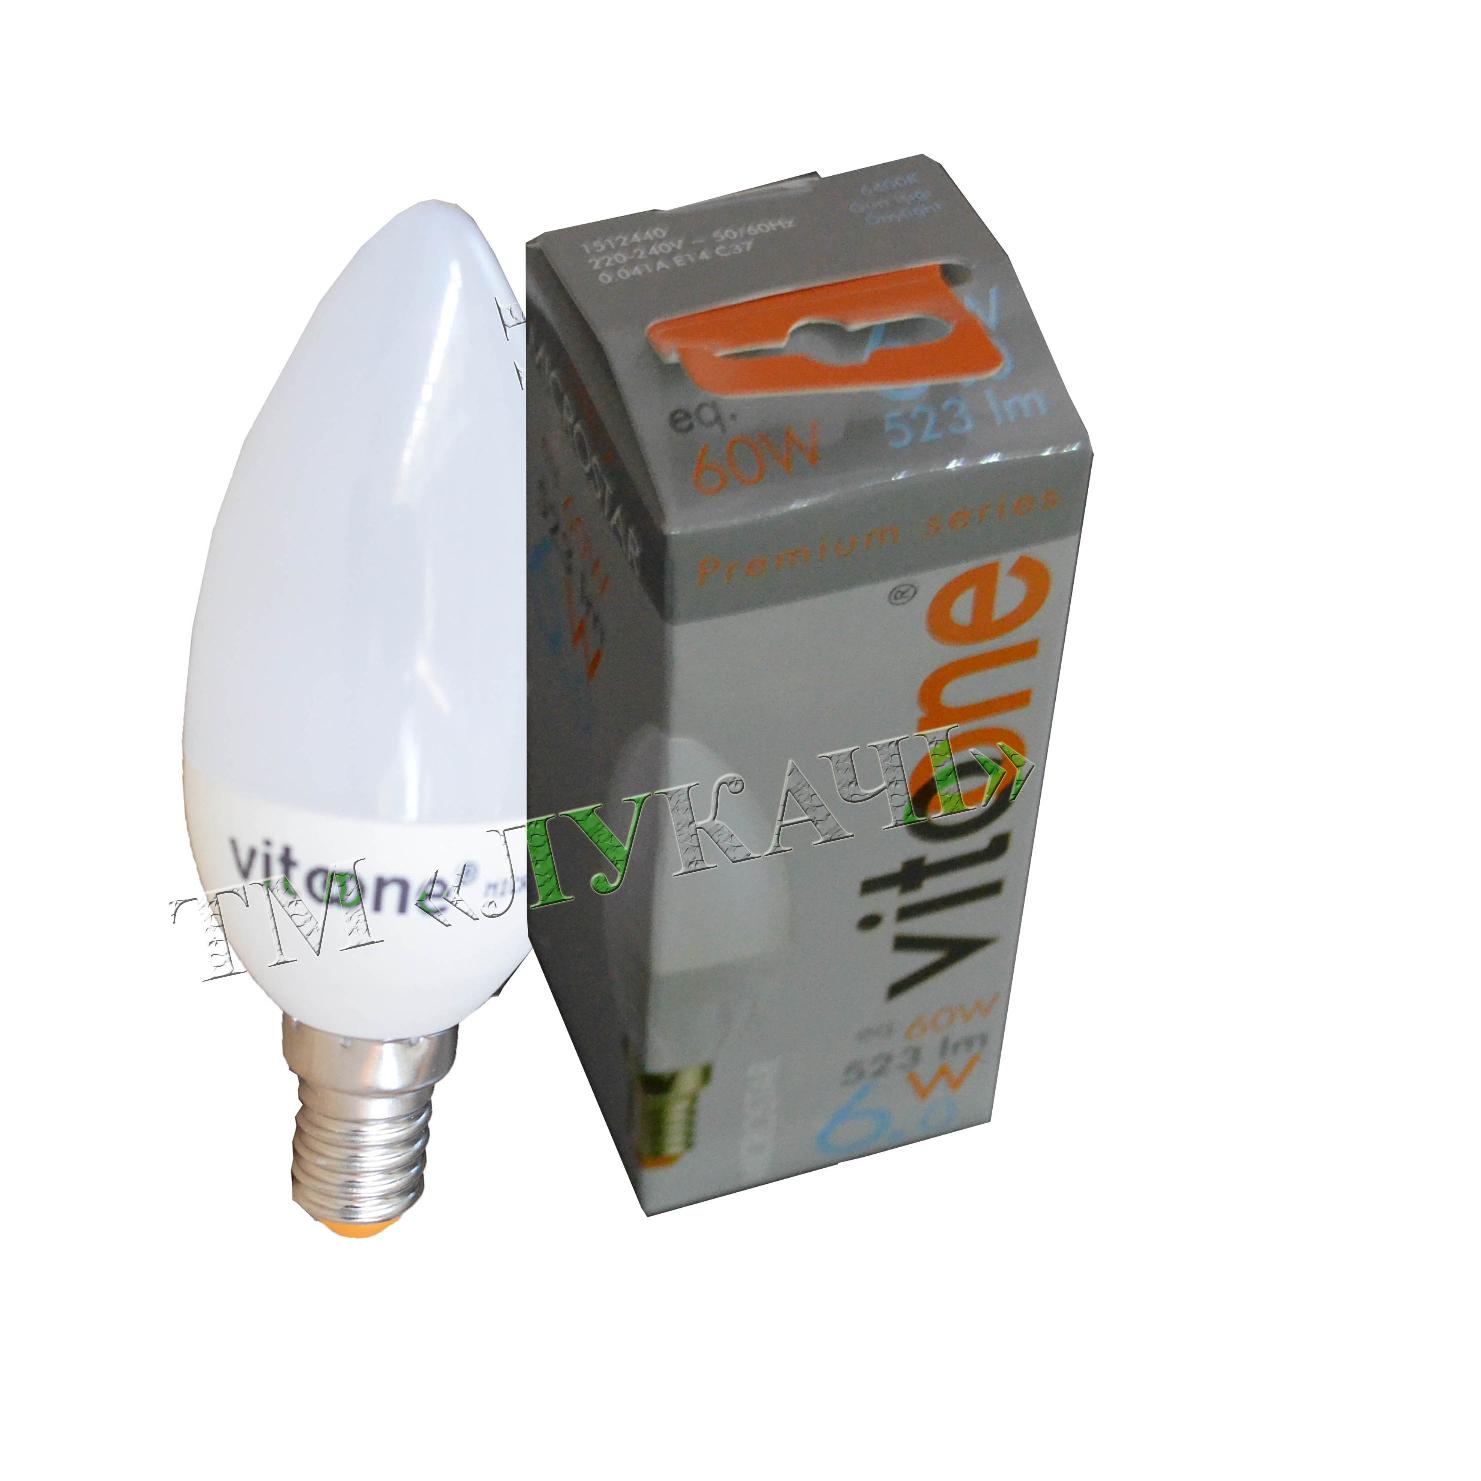 Лампа LED VITOONE C37 3,5W E14 6400K Optiled свіча мат 1500610